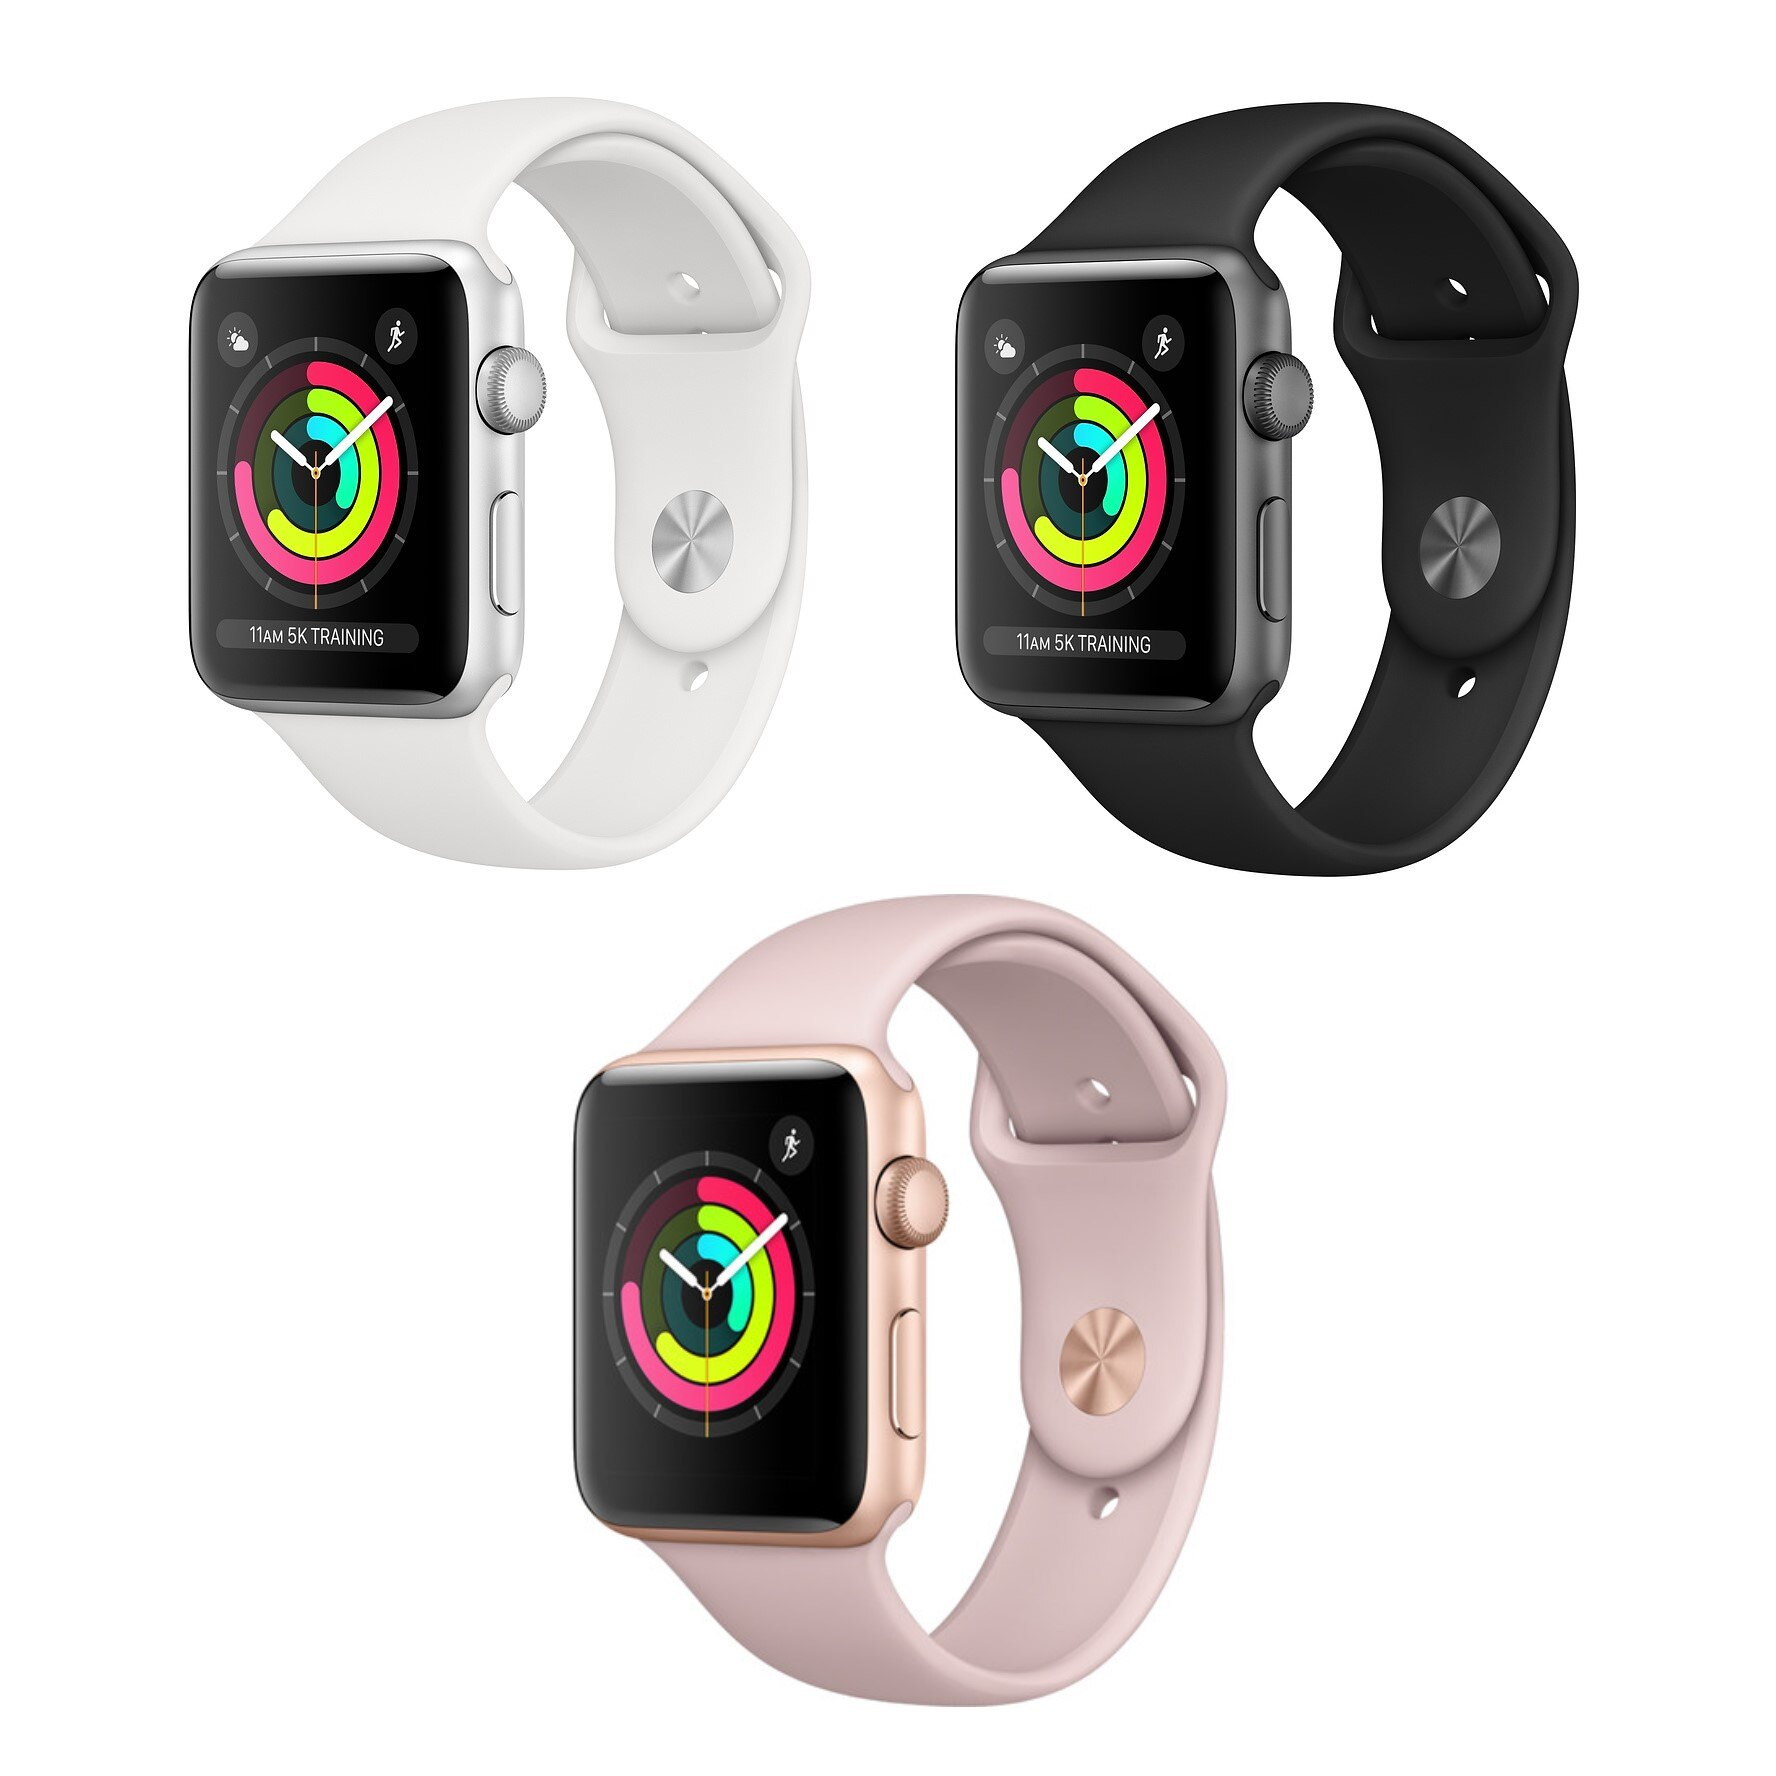 new product a3aa3 8a0f4 Apple Watch Series 3 - 38mm - GPS Only - Aluminum Case Smartwatch with  Sport Band